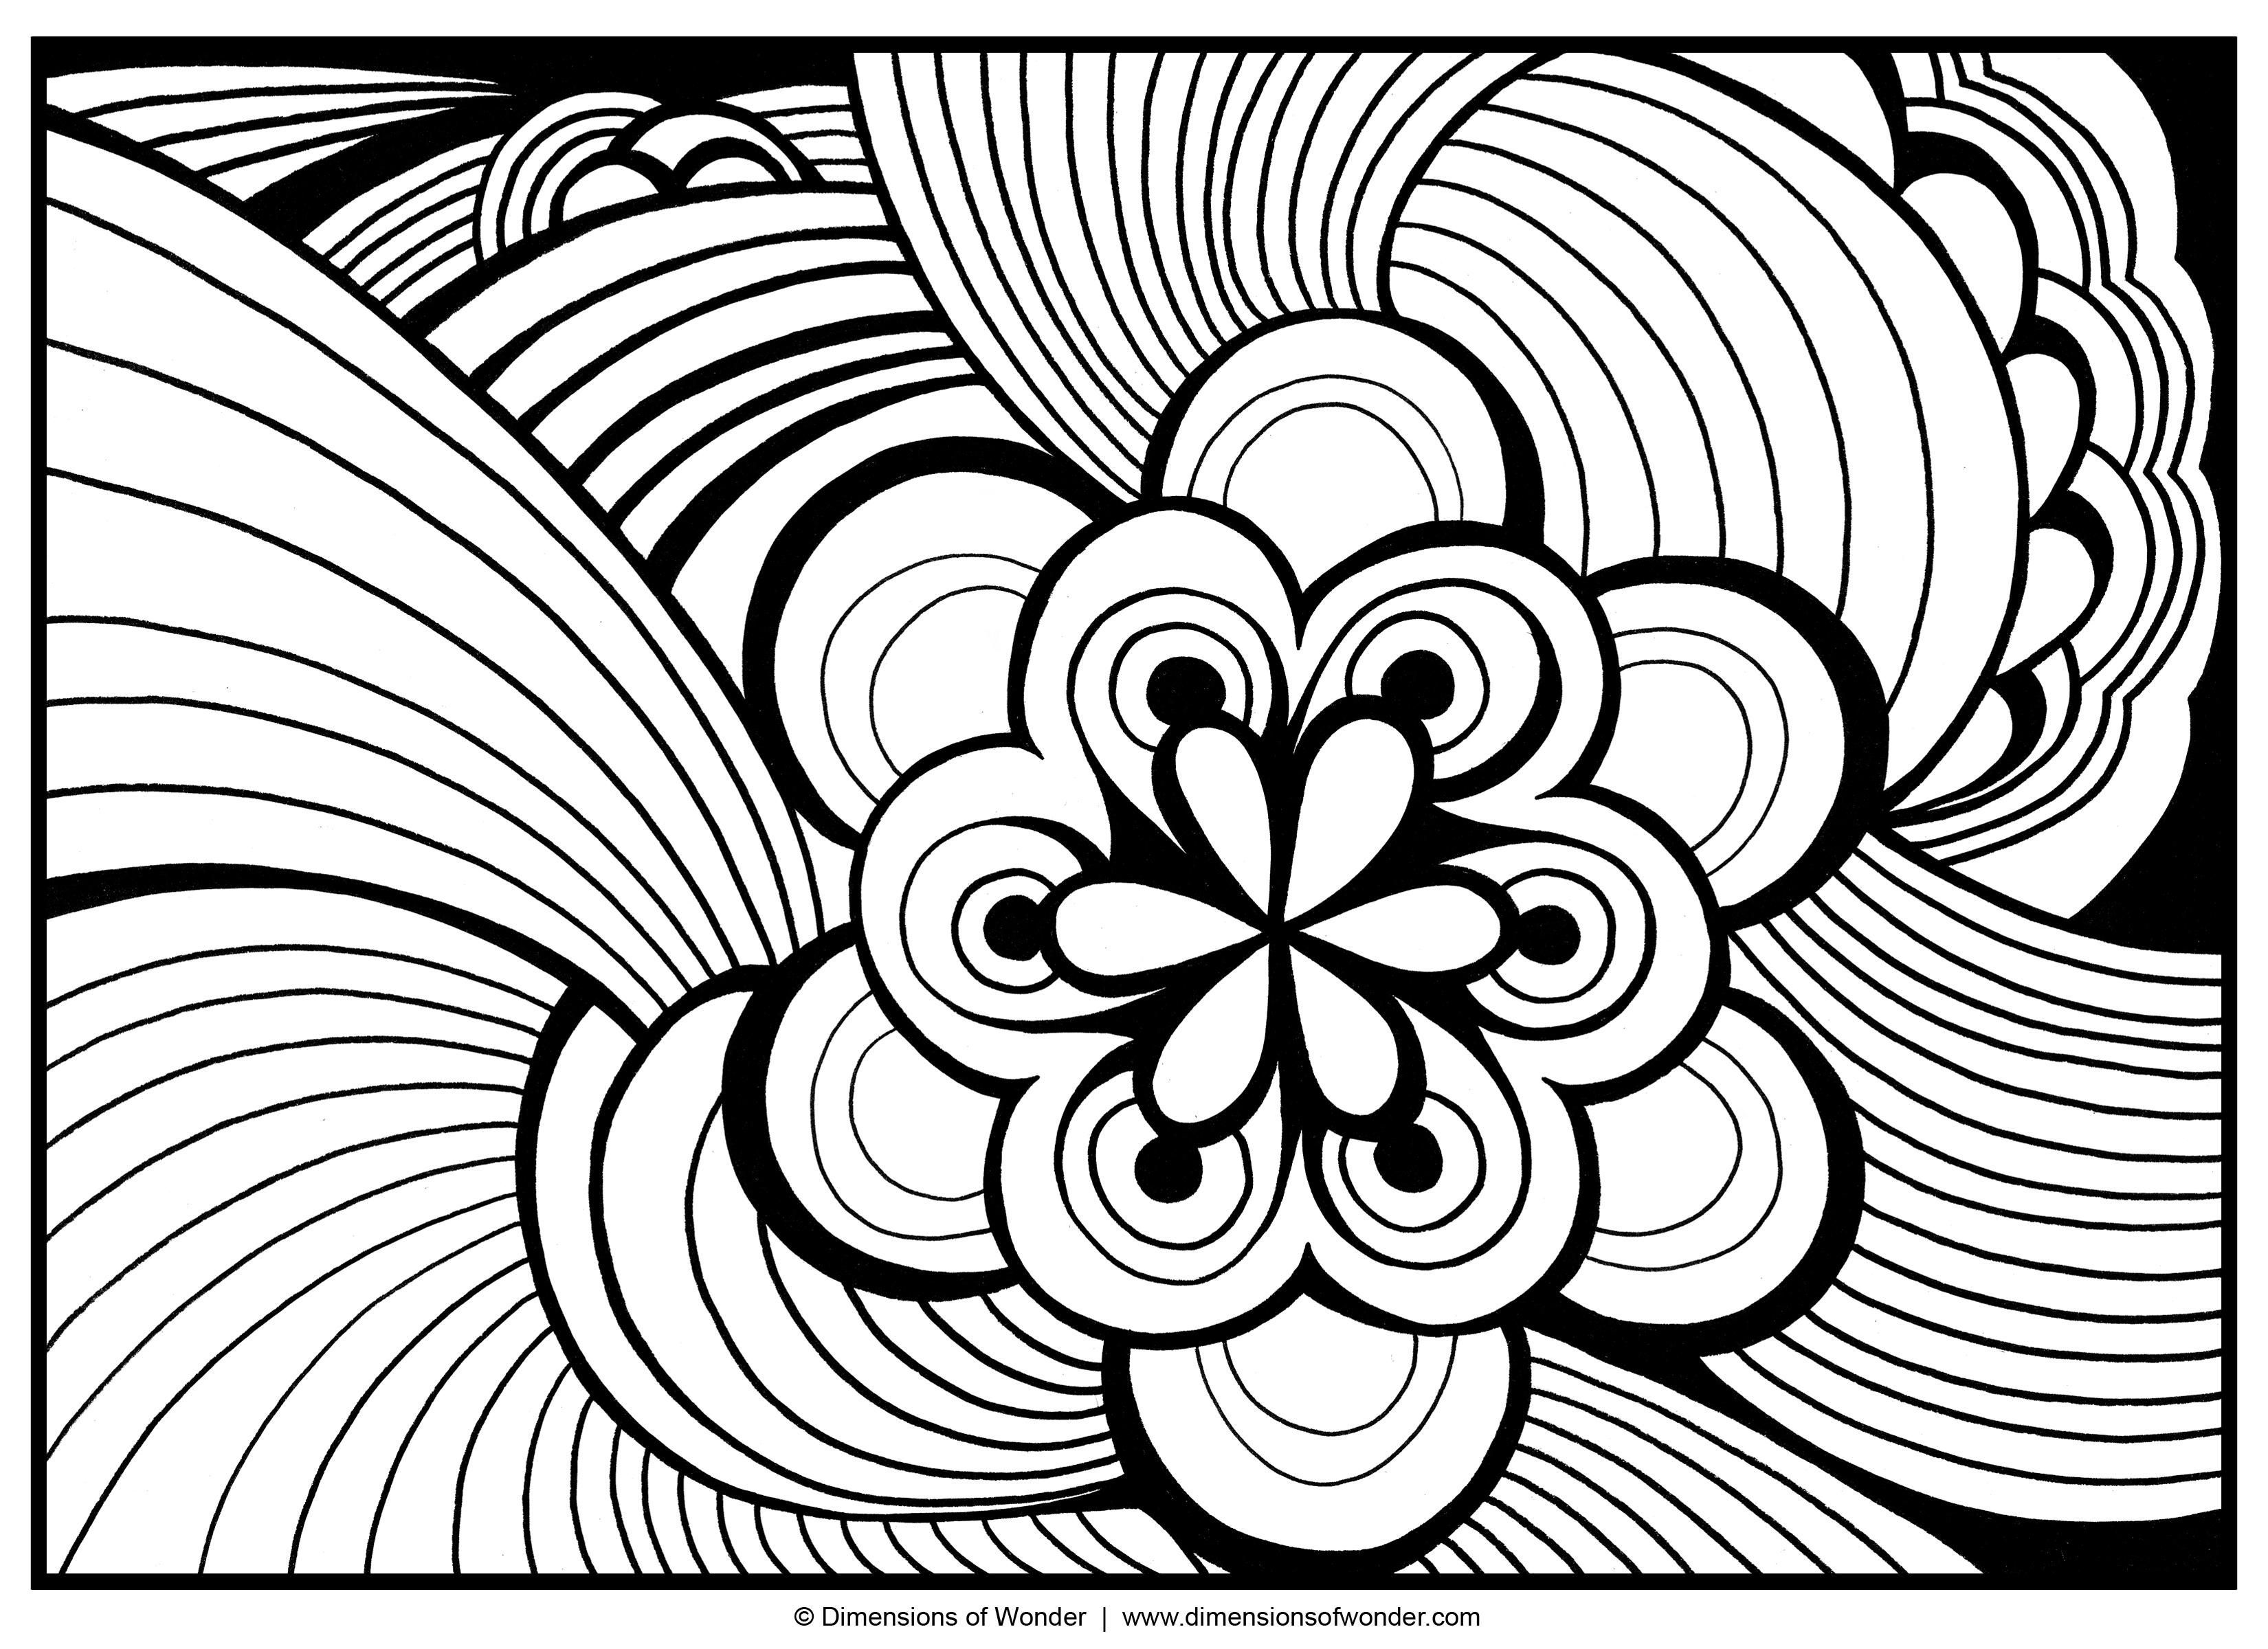 3300x2400 Awesome Coloring Pages For Adults Abstract Flowers Free Coloring